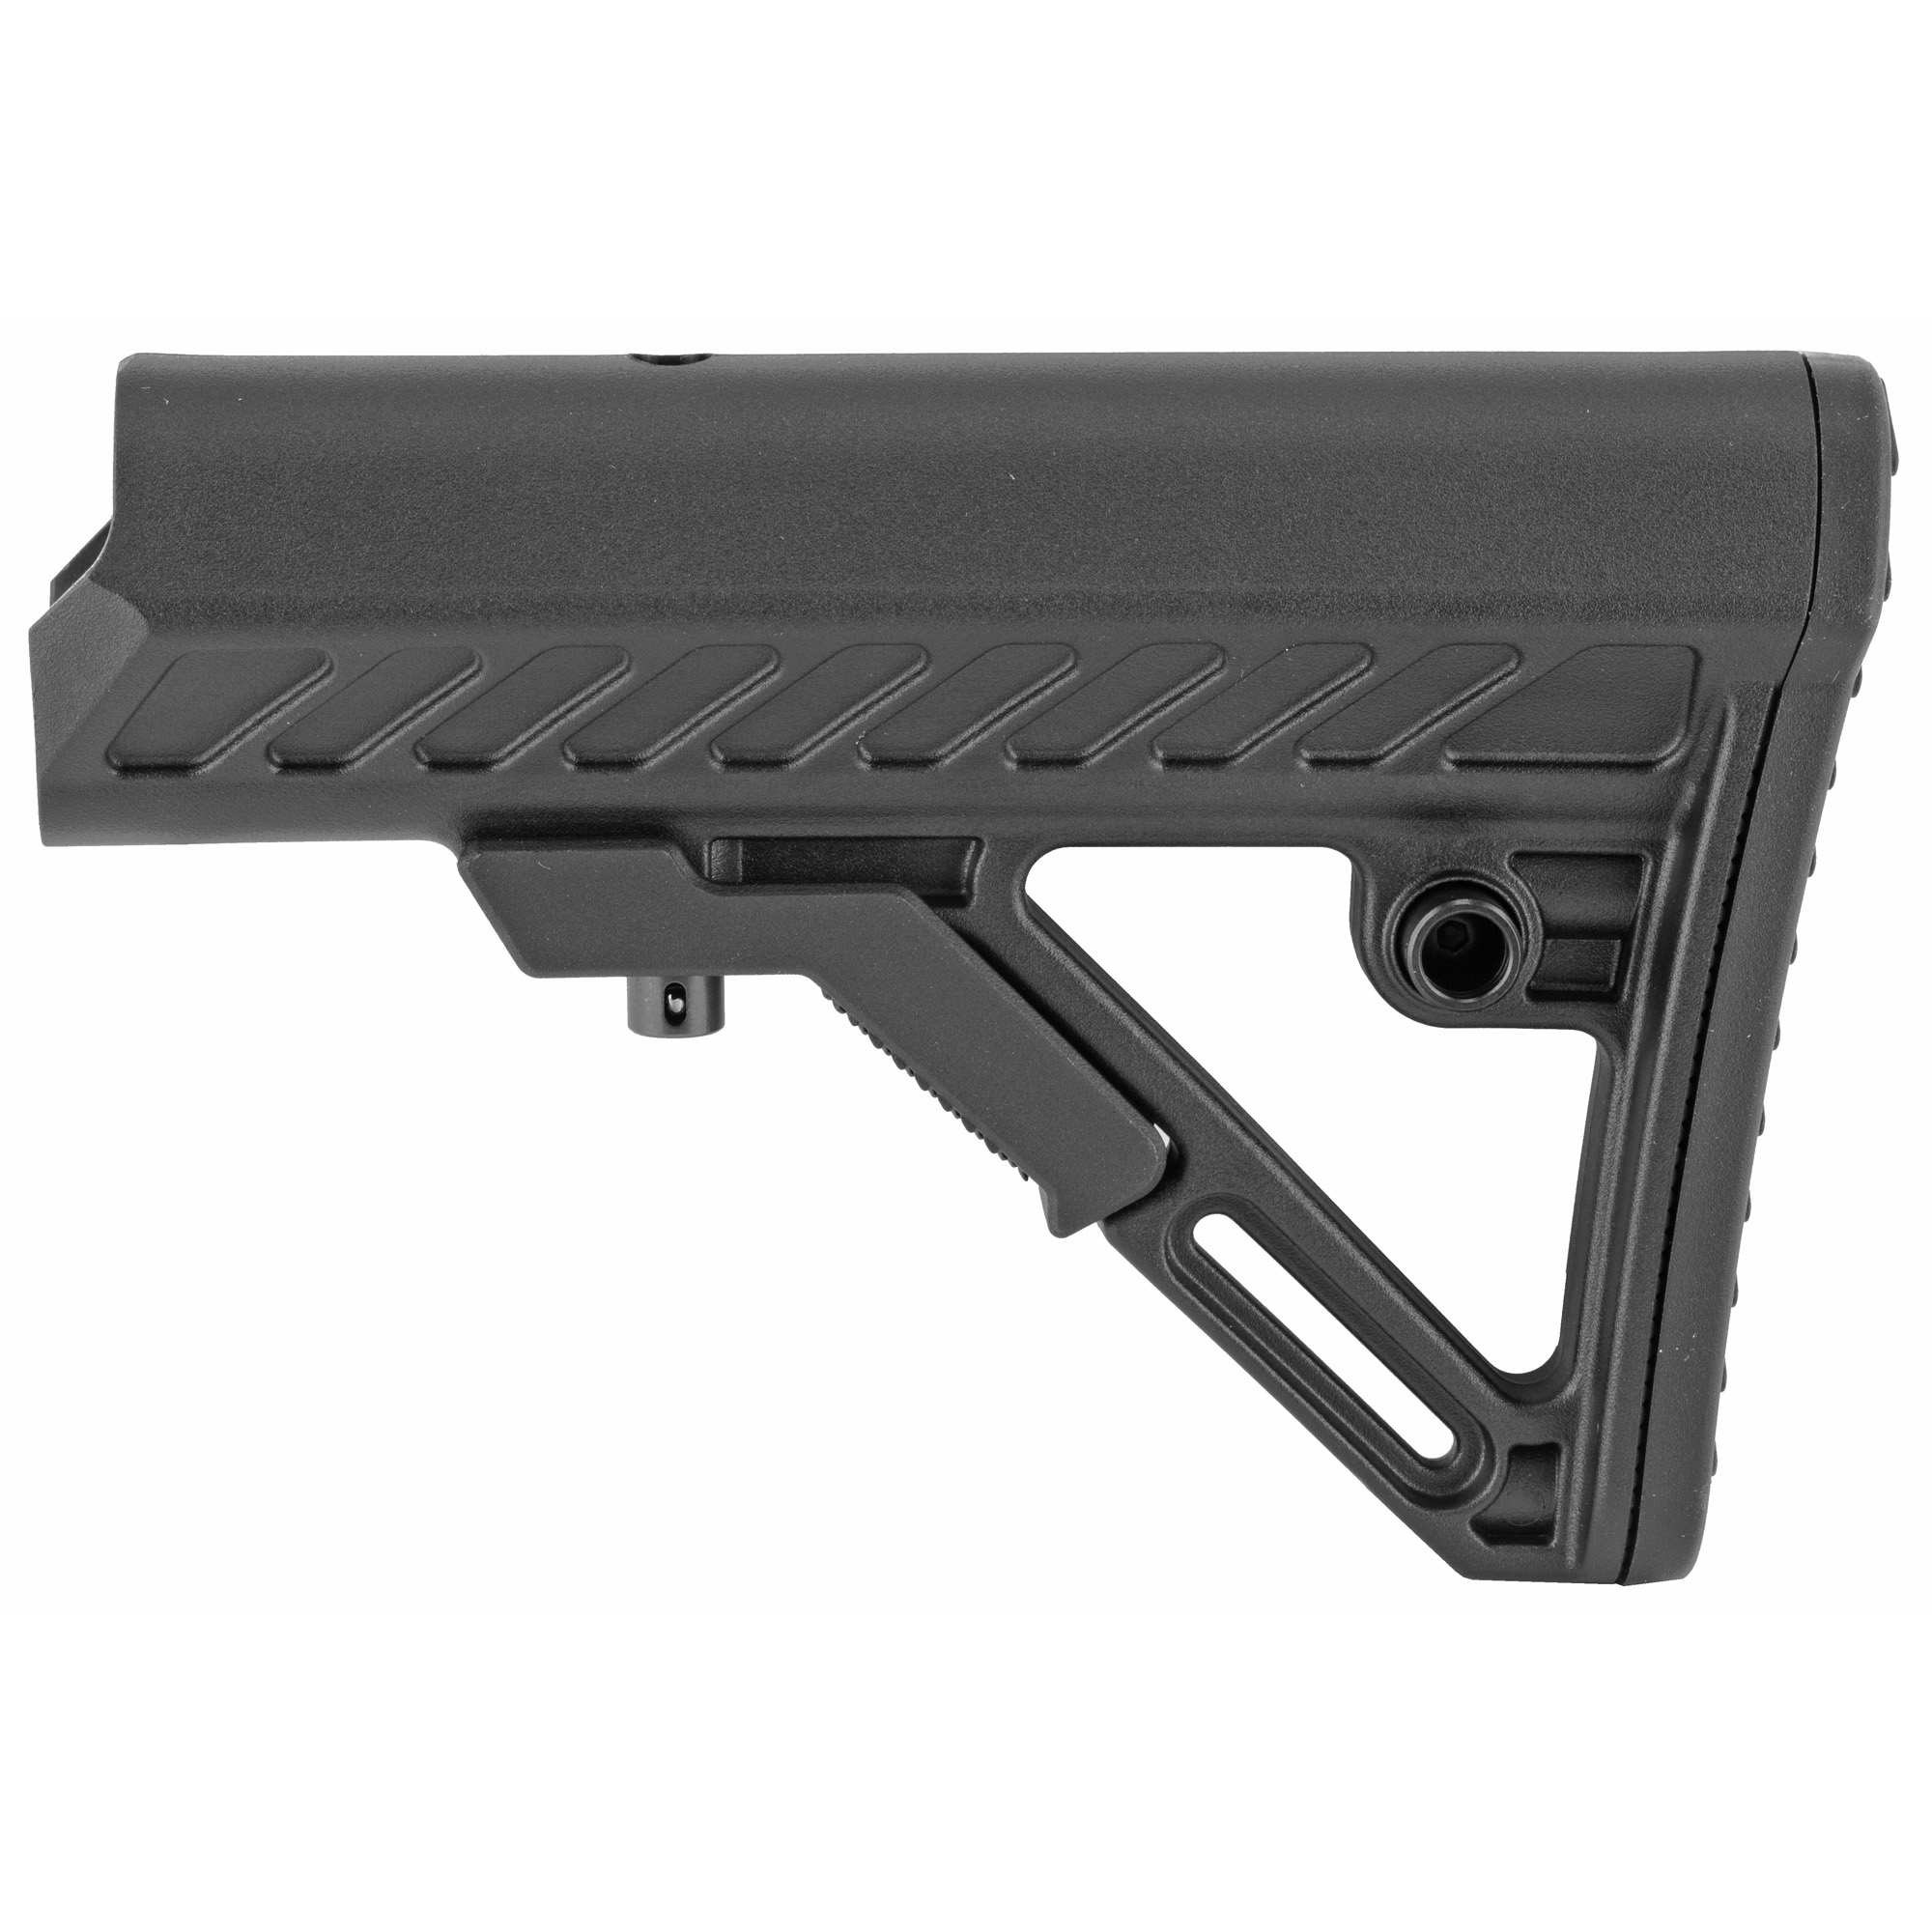 """The Leapers UTG AR-15 PRO Model 4 Ops Ready S2 Stock is molded from high impact reinforced polymer materials. It features an ergonomically chamfered rubberized butt pad and a slanted cheek rest that enhances shooting stability and consistent firearm control. The Mil-Spec stock has an integral sling loop and ambidextrous QD sling swivel housing. Lightweight and super slim"""" the stock has fully dehorned corners and melted contours for snag-free use."""